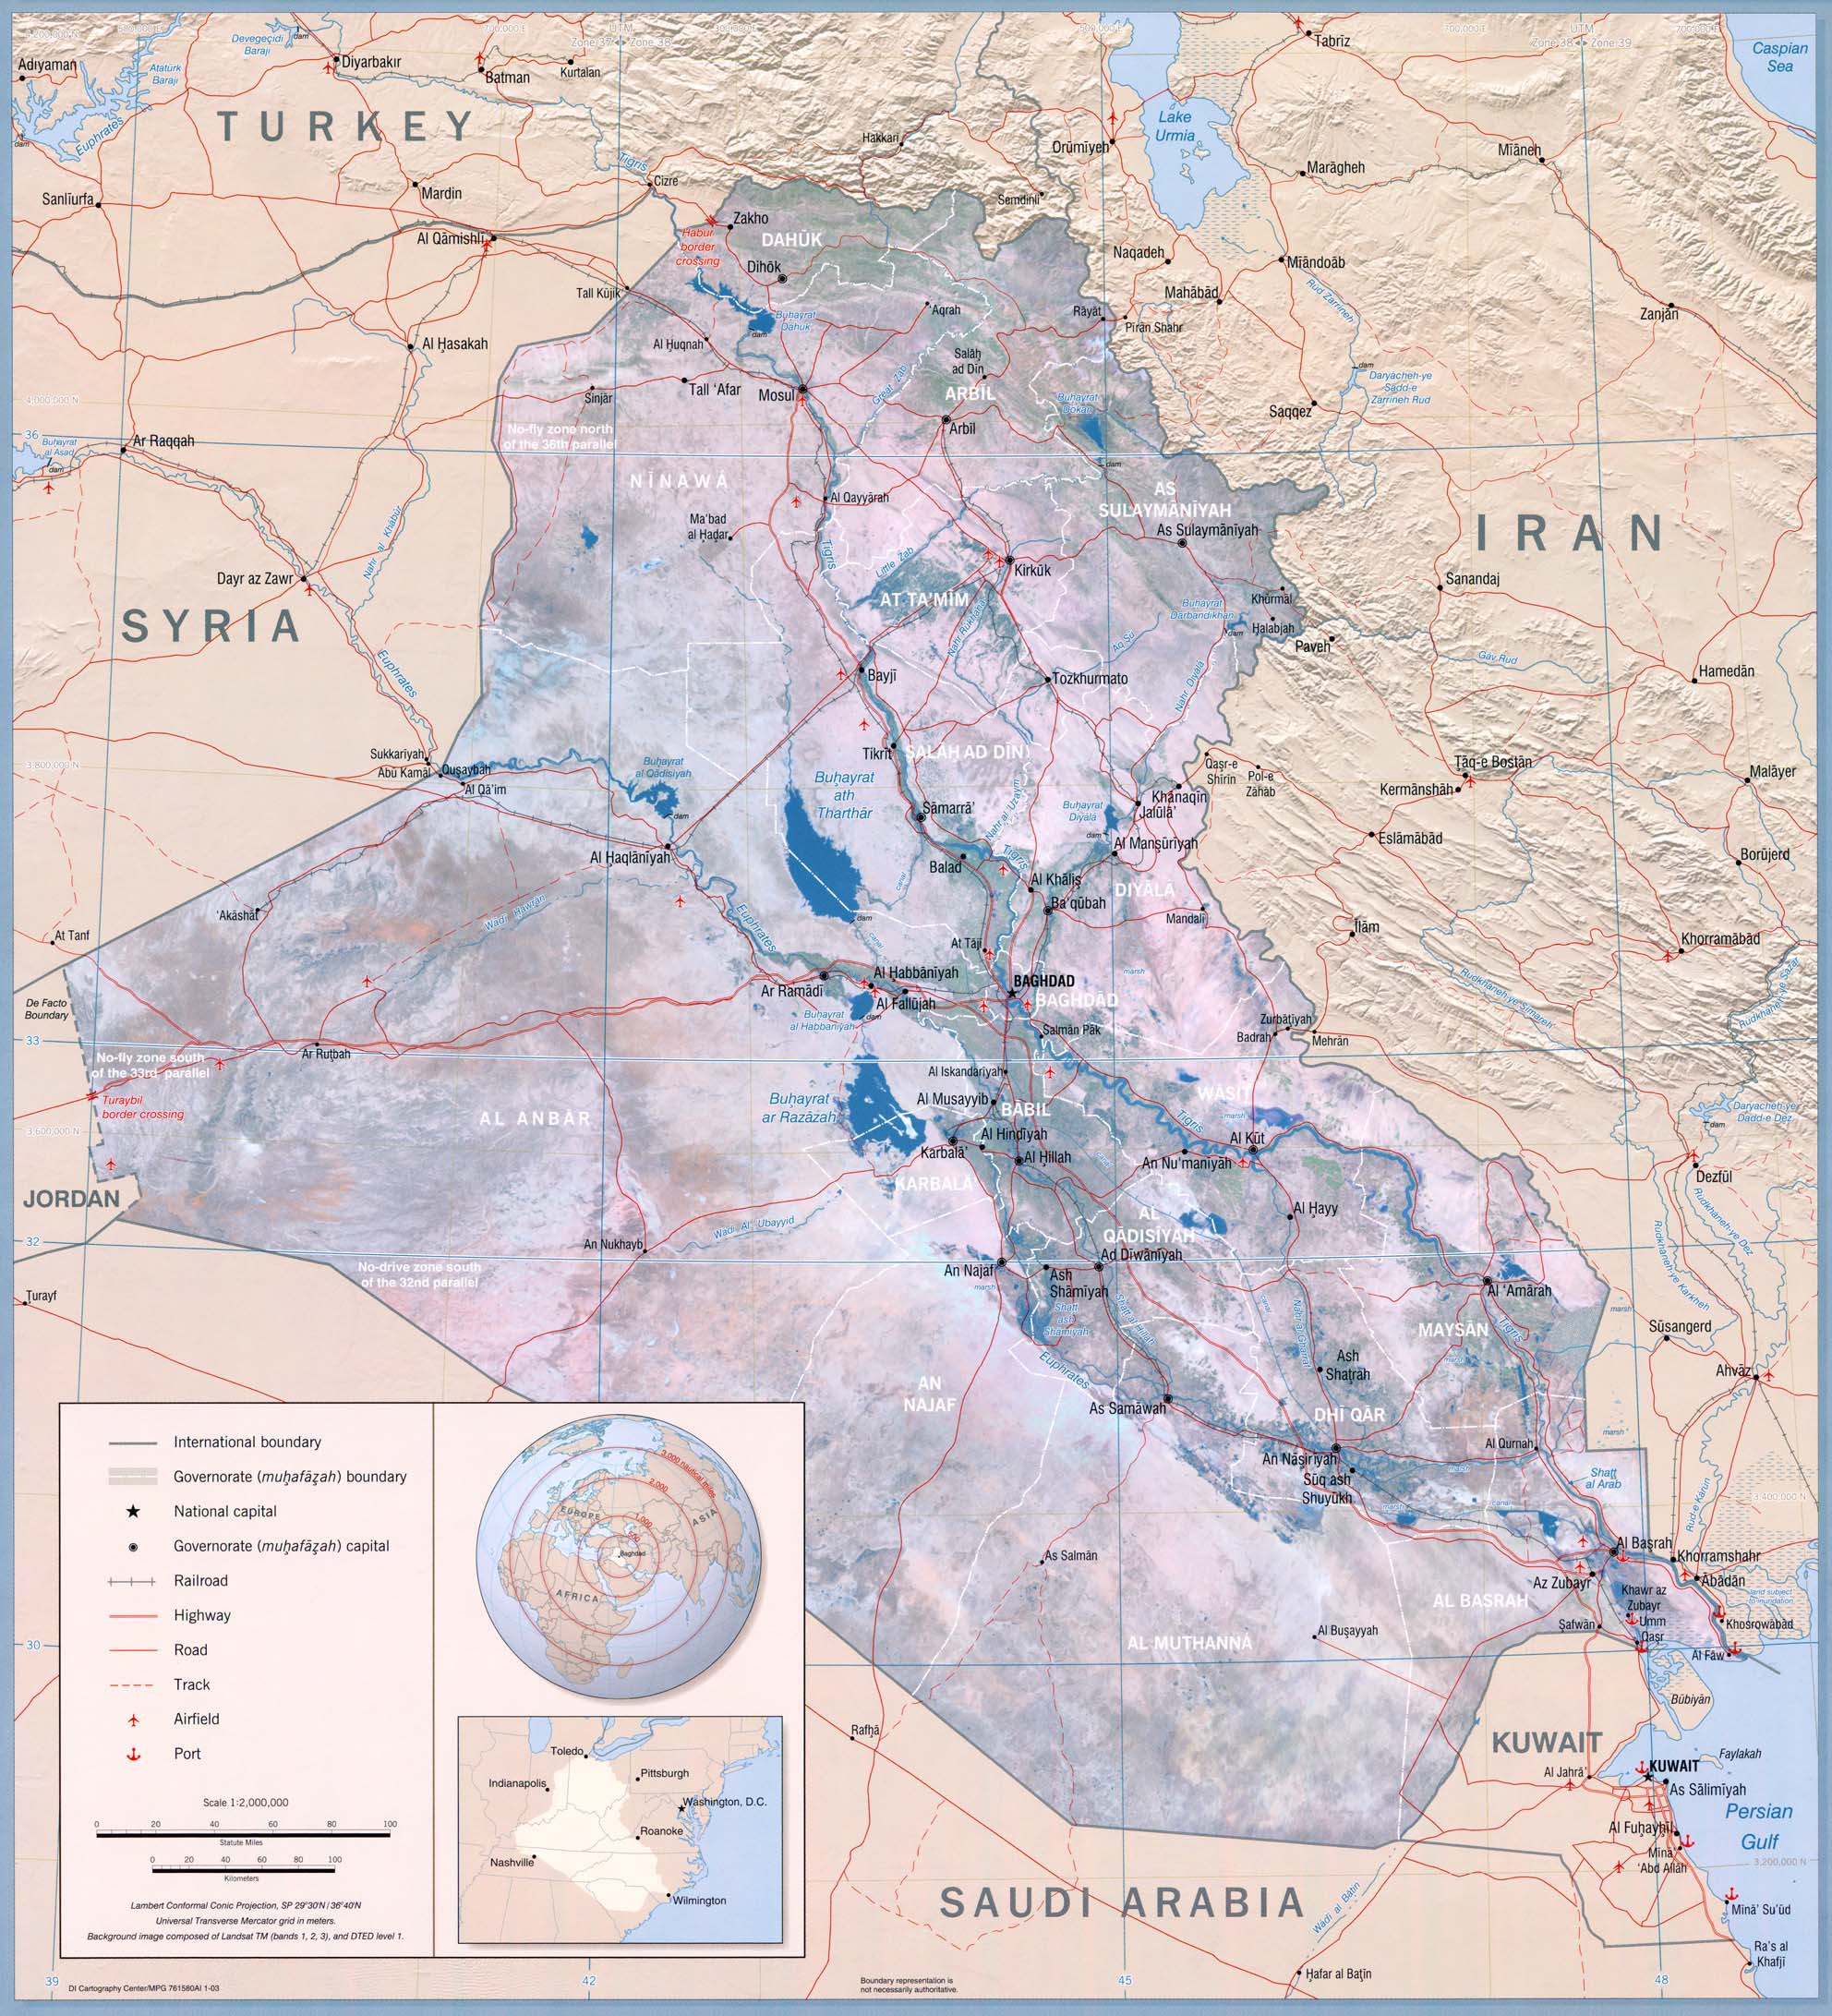 a history of the country of iraq At the past 10 years of iraq's history through the lens of displacement reveals a   elsewhere in iraq while an additional 2 million or so fled the country entirely.